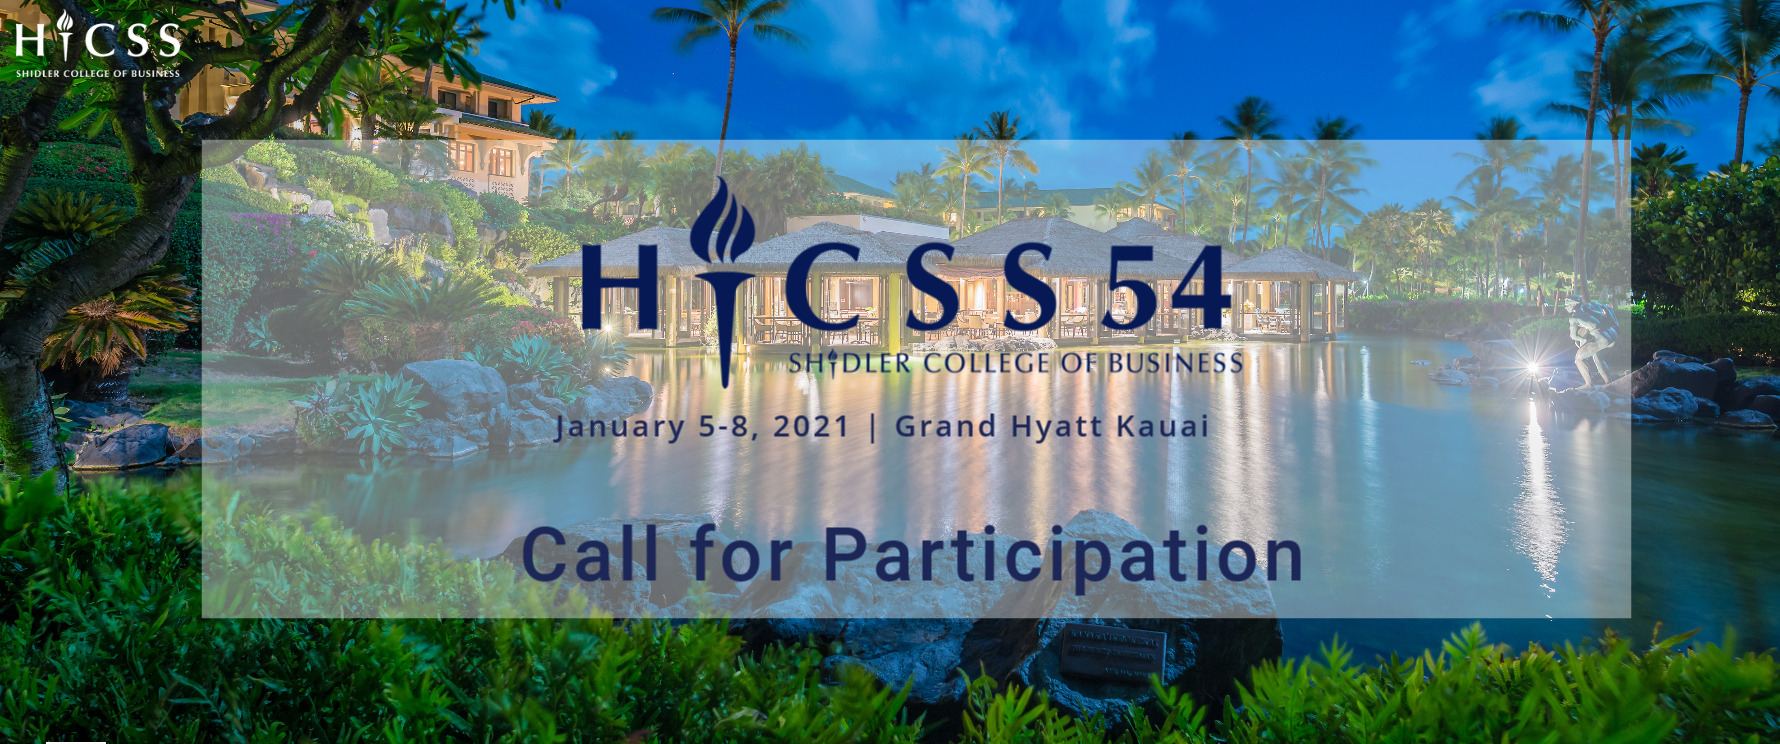 Call for Papers - Due June 15, 2020